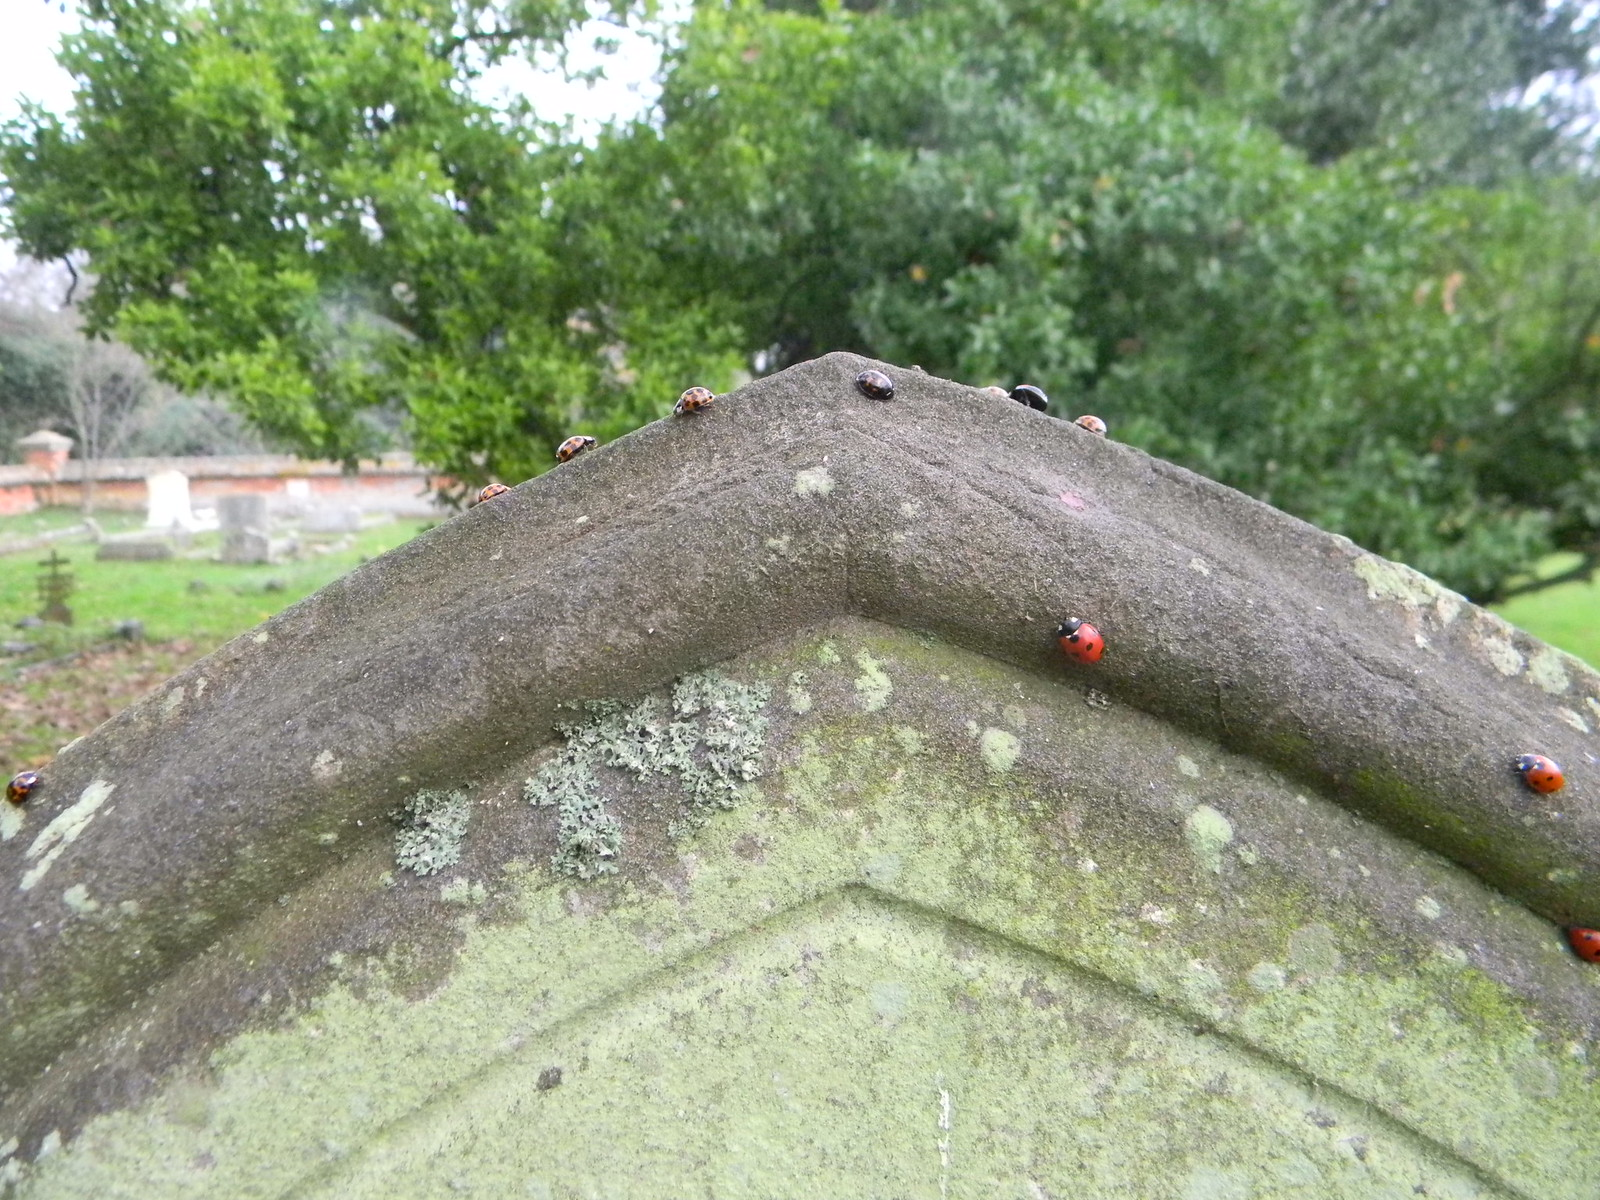 Sermon on the mount... ....re-enacted by ladybirds. A curious sight. Many of the gravestones in Lawford churchyard had congregations of ladybirds at the top. And not just one species, red ones, black ones, brown ones.... Manningtree Circular